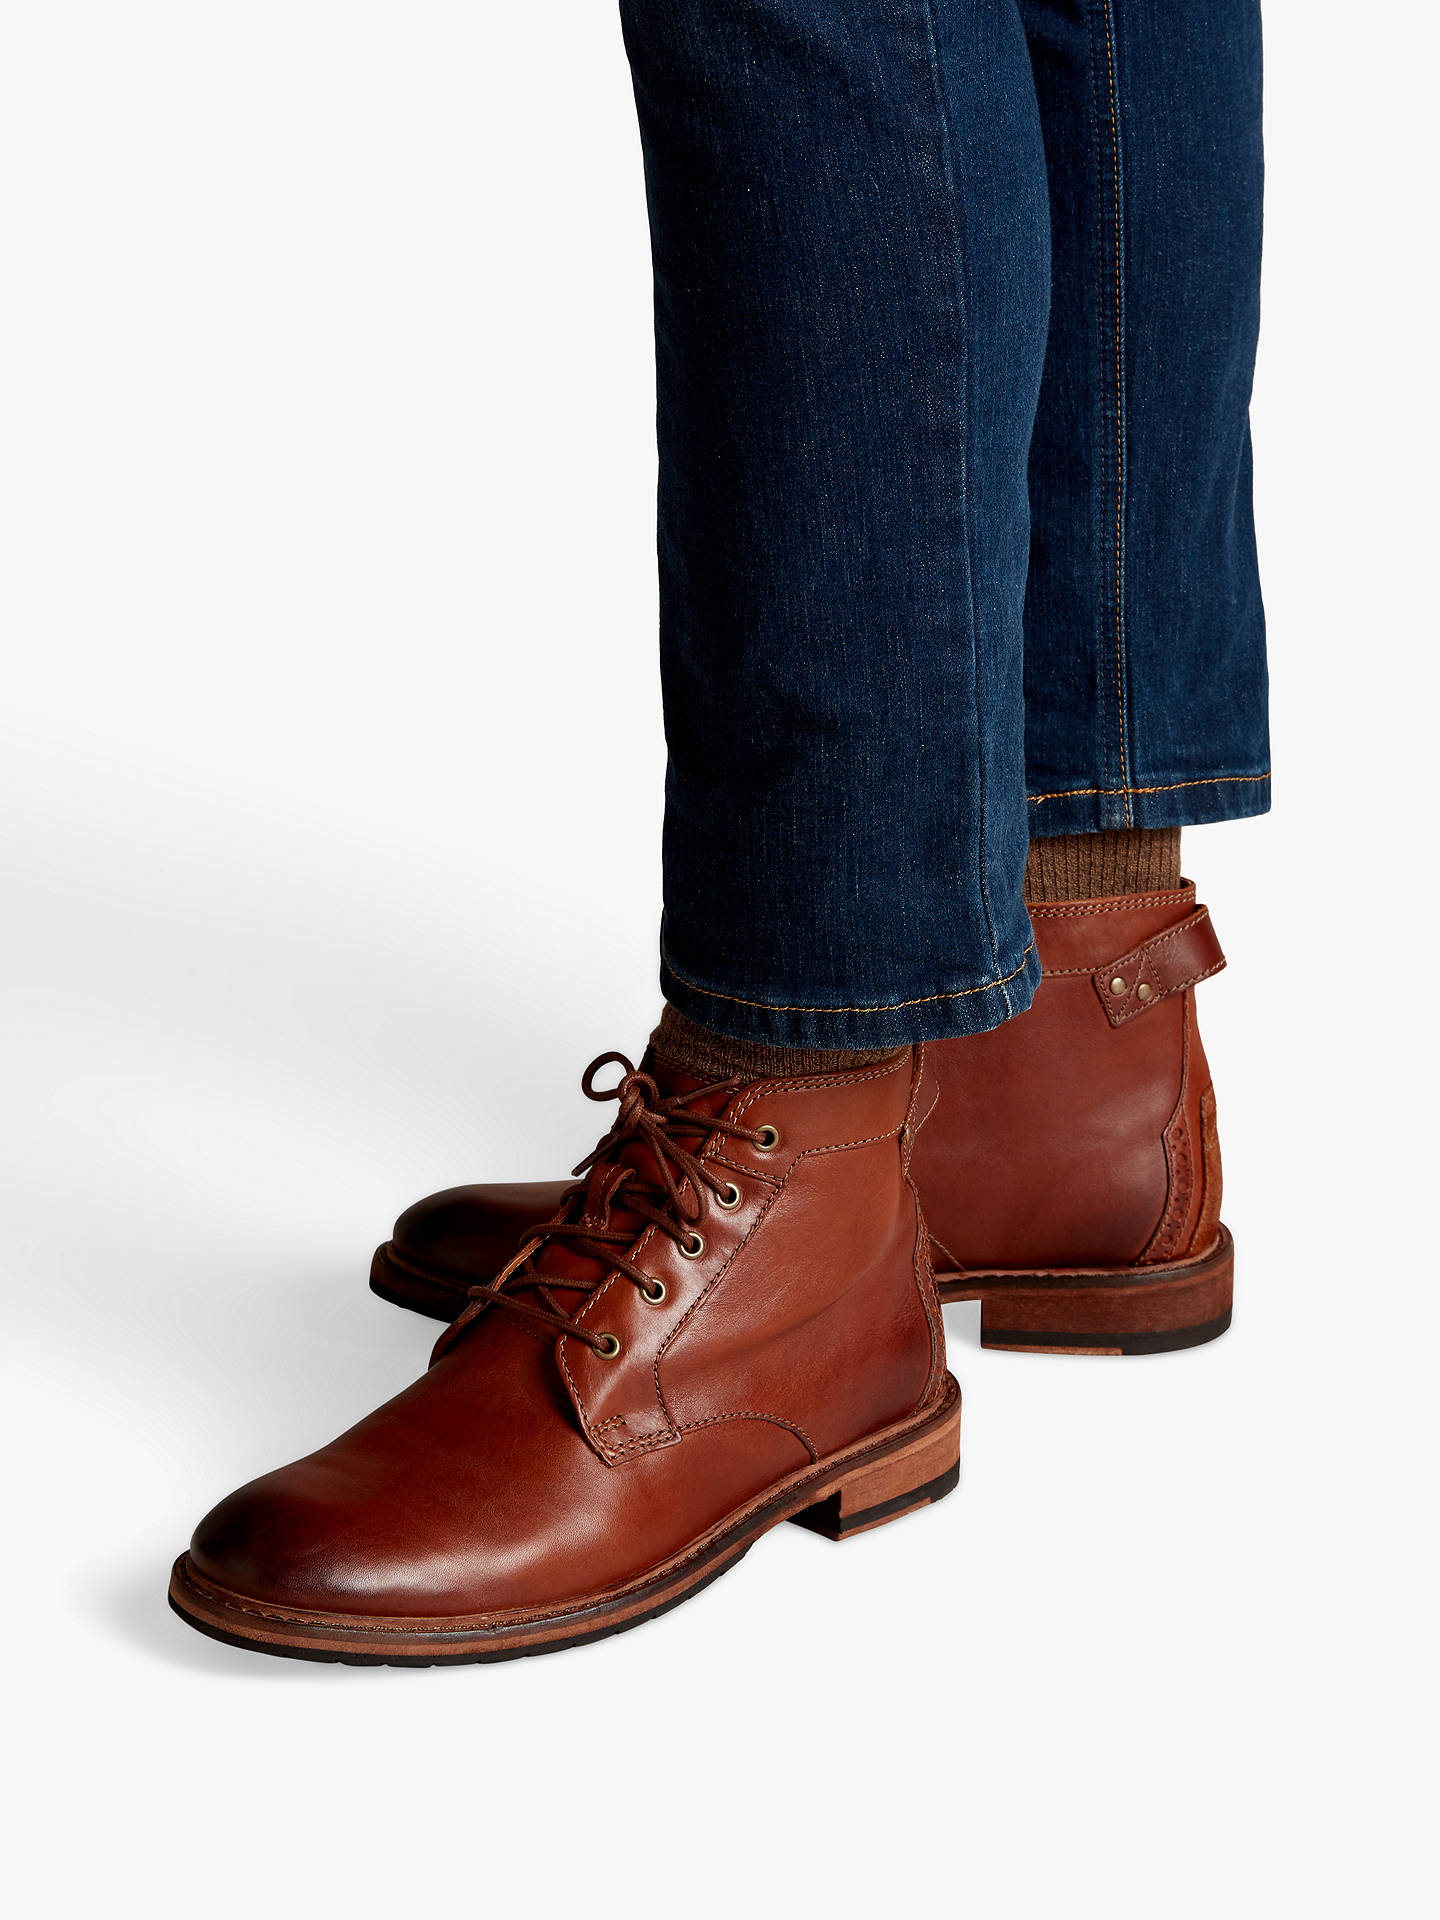 Clarks Clarkdale Bud Leather Boots